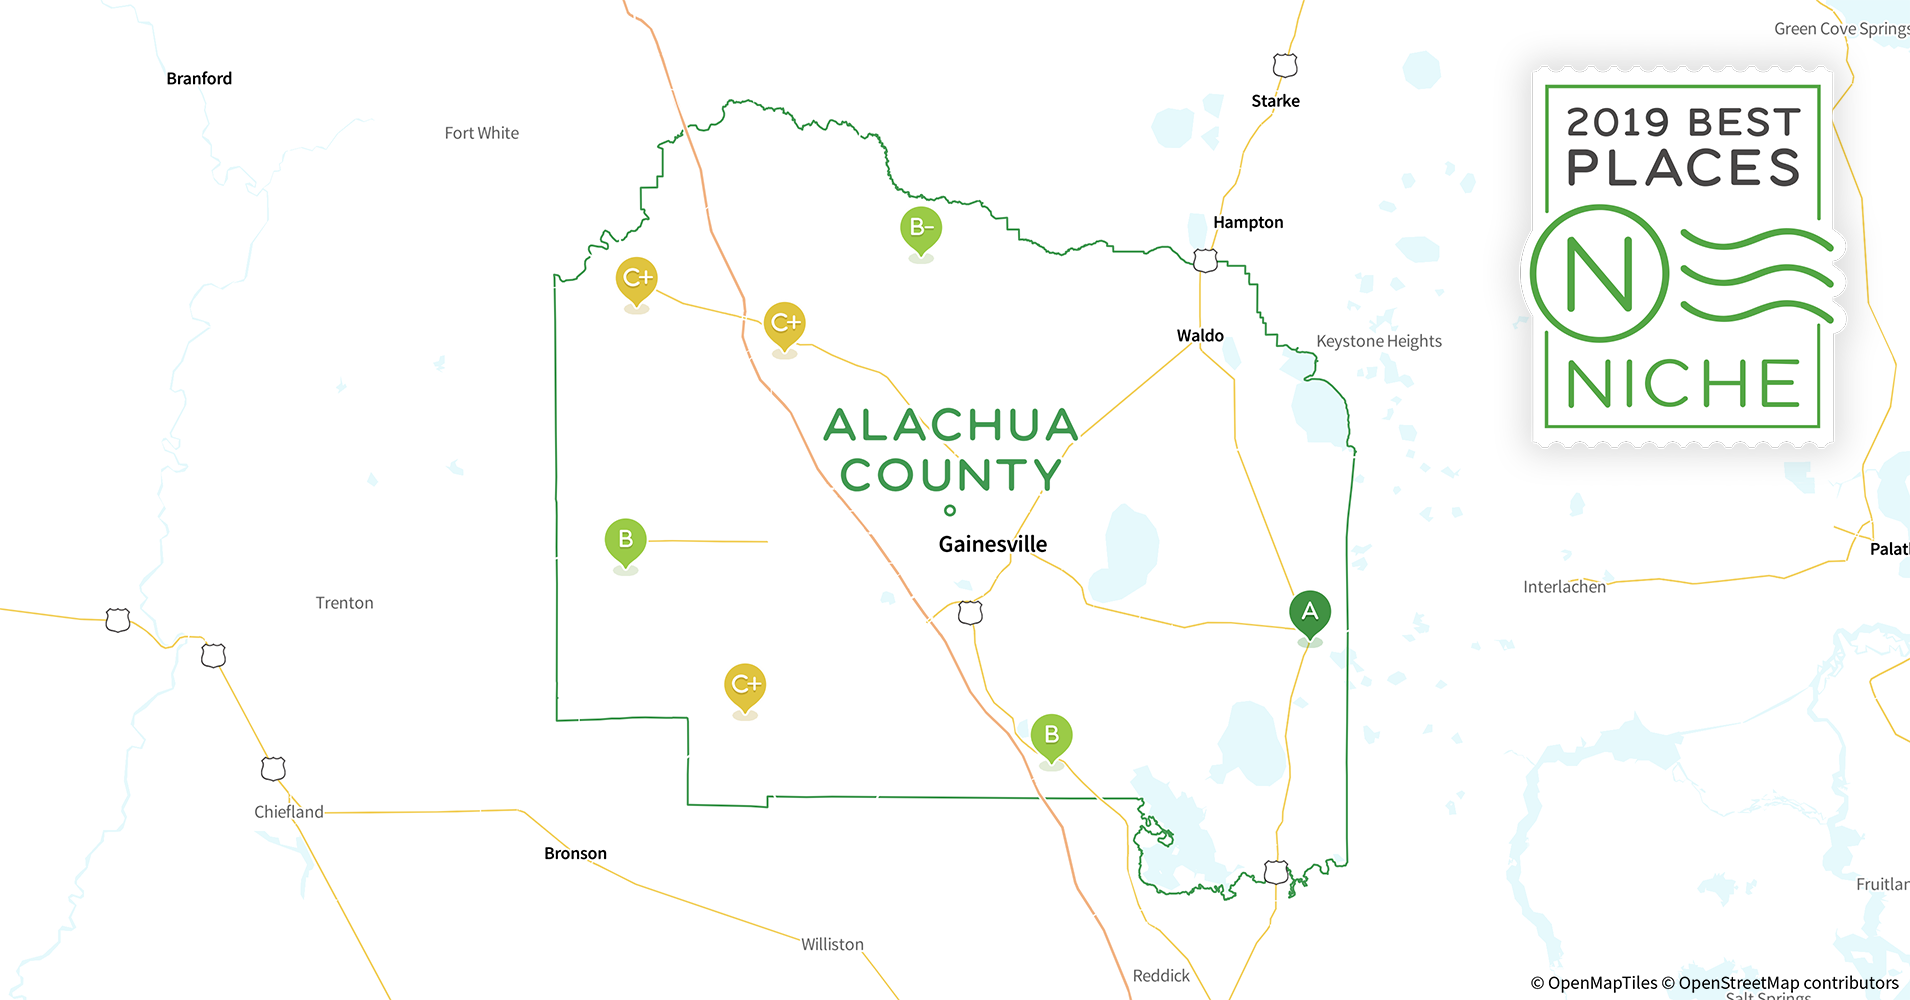 2019 Safe Places to Live in Alachua County, FL - Niche